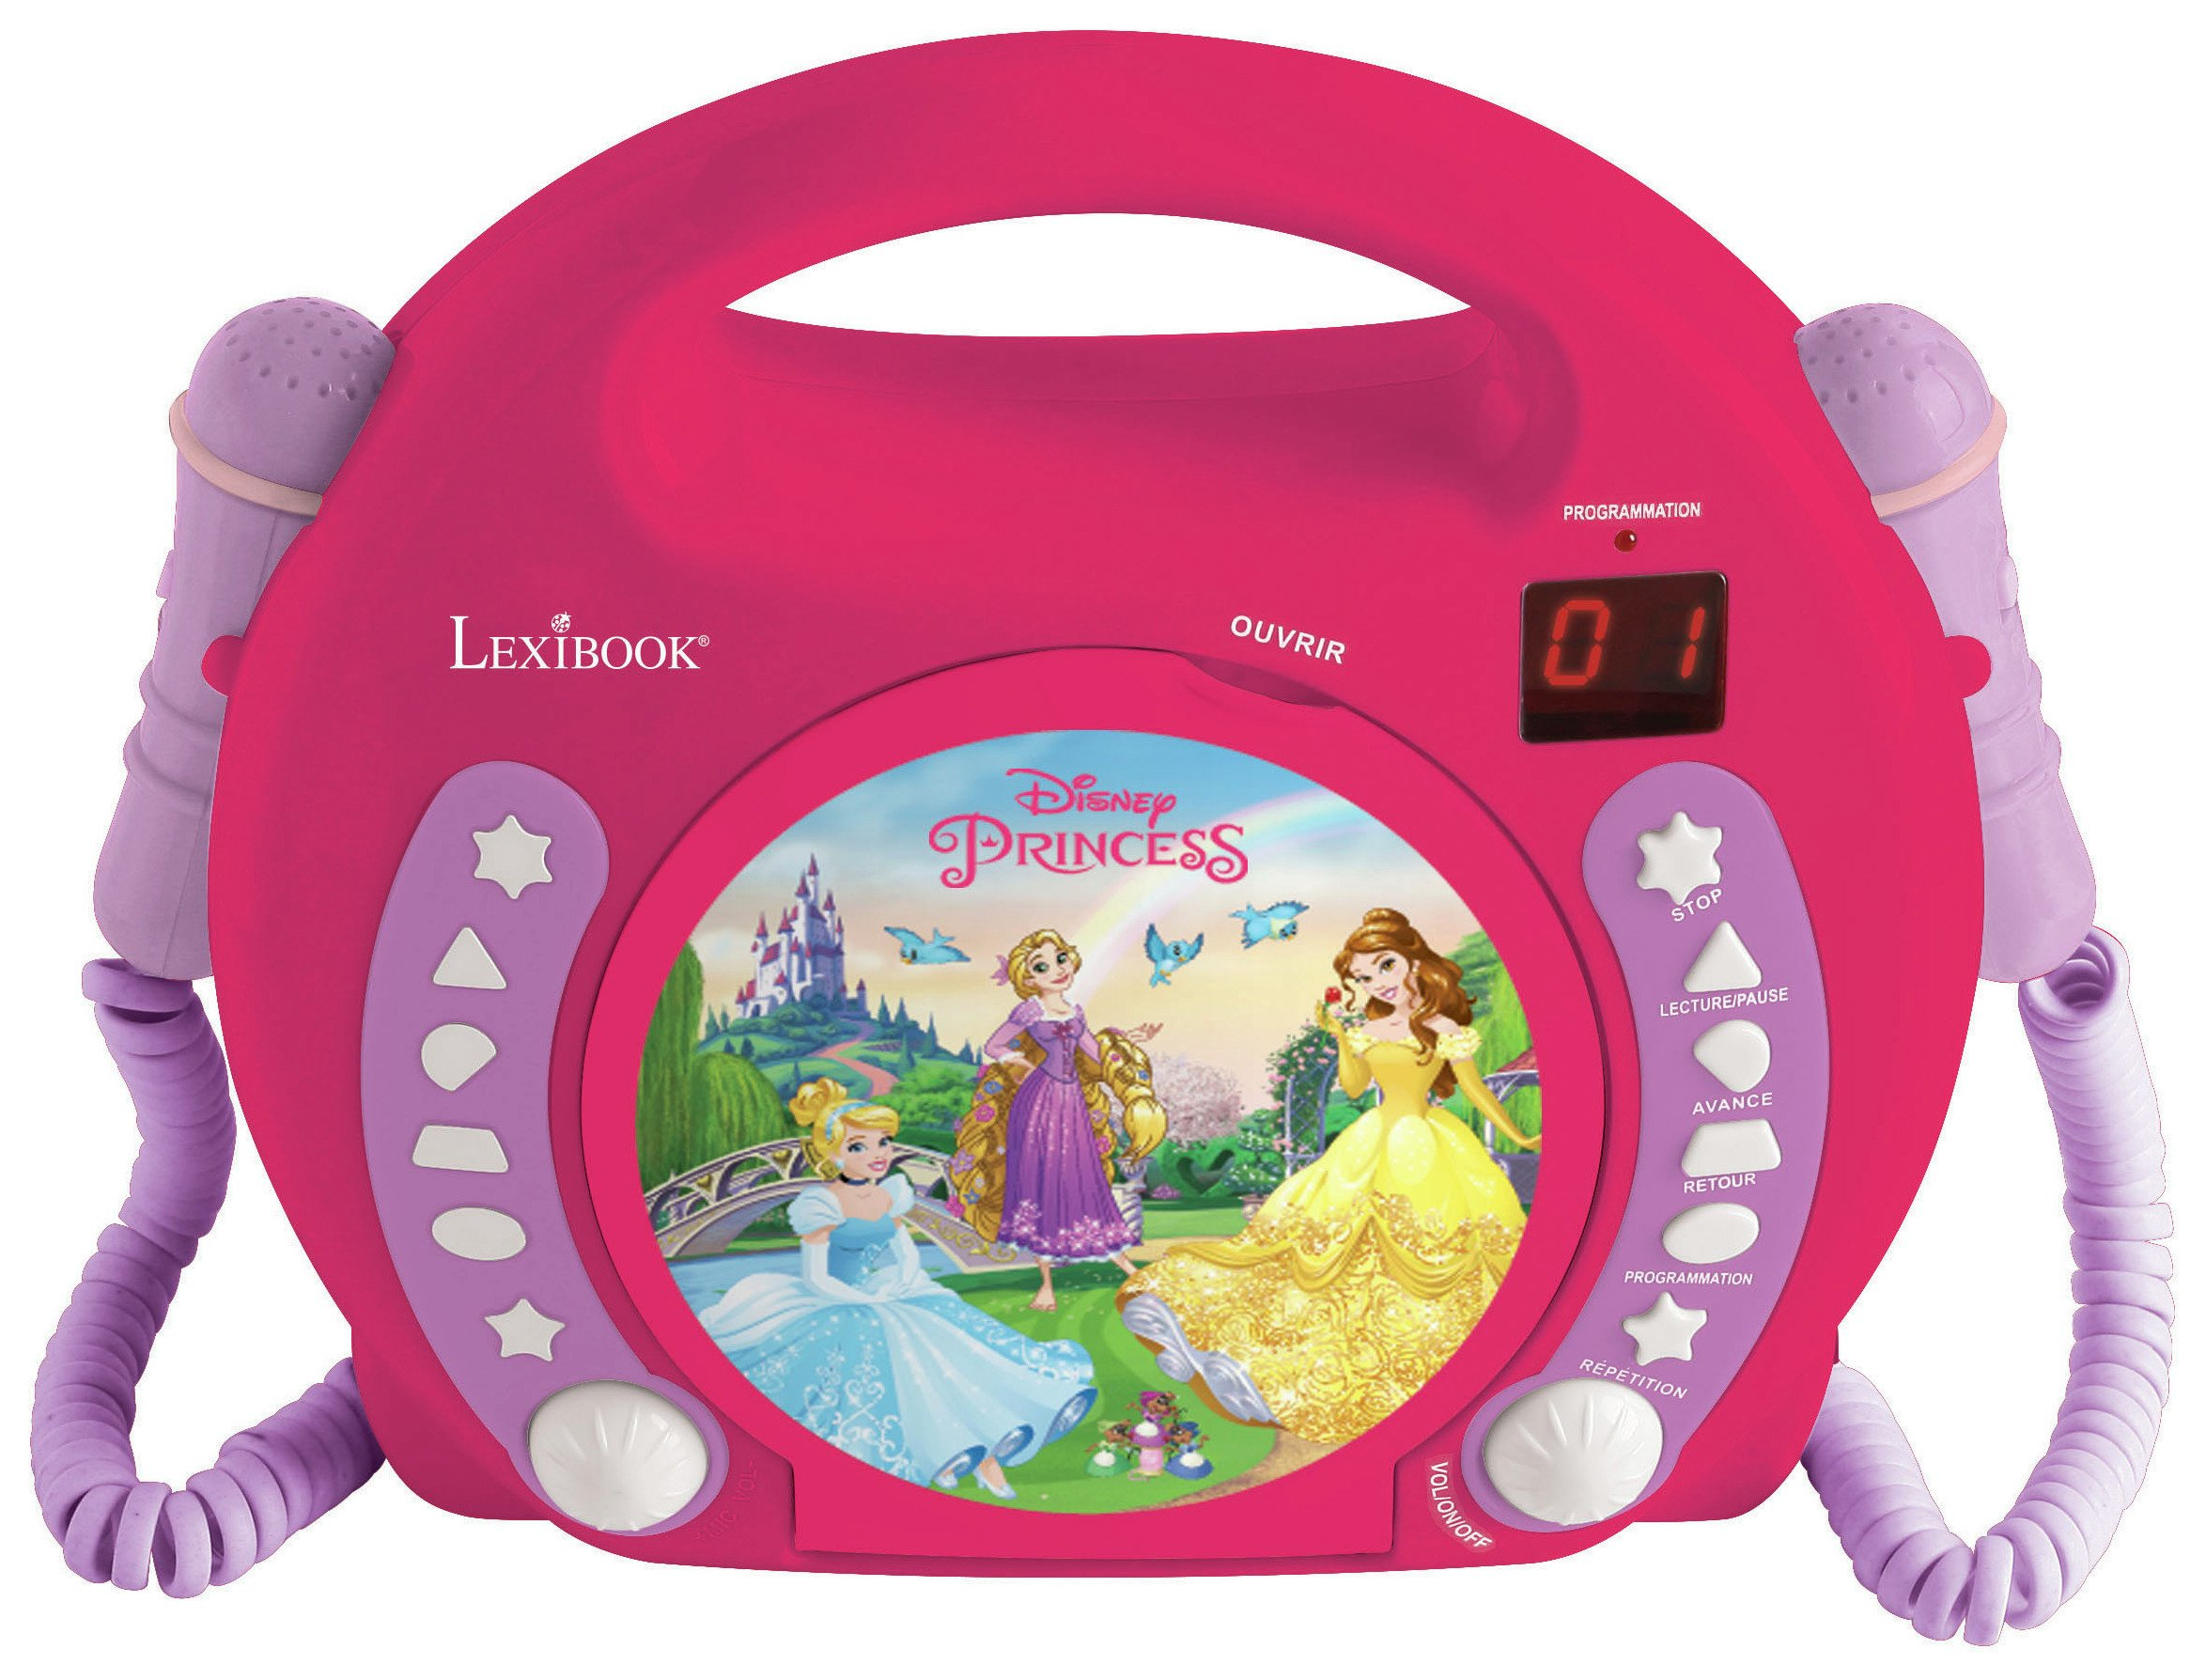 Lexibook Disney Princess CD Player - Pink